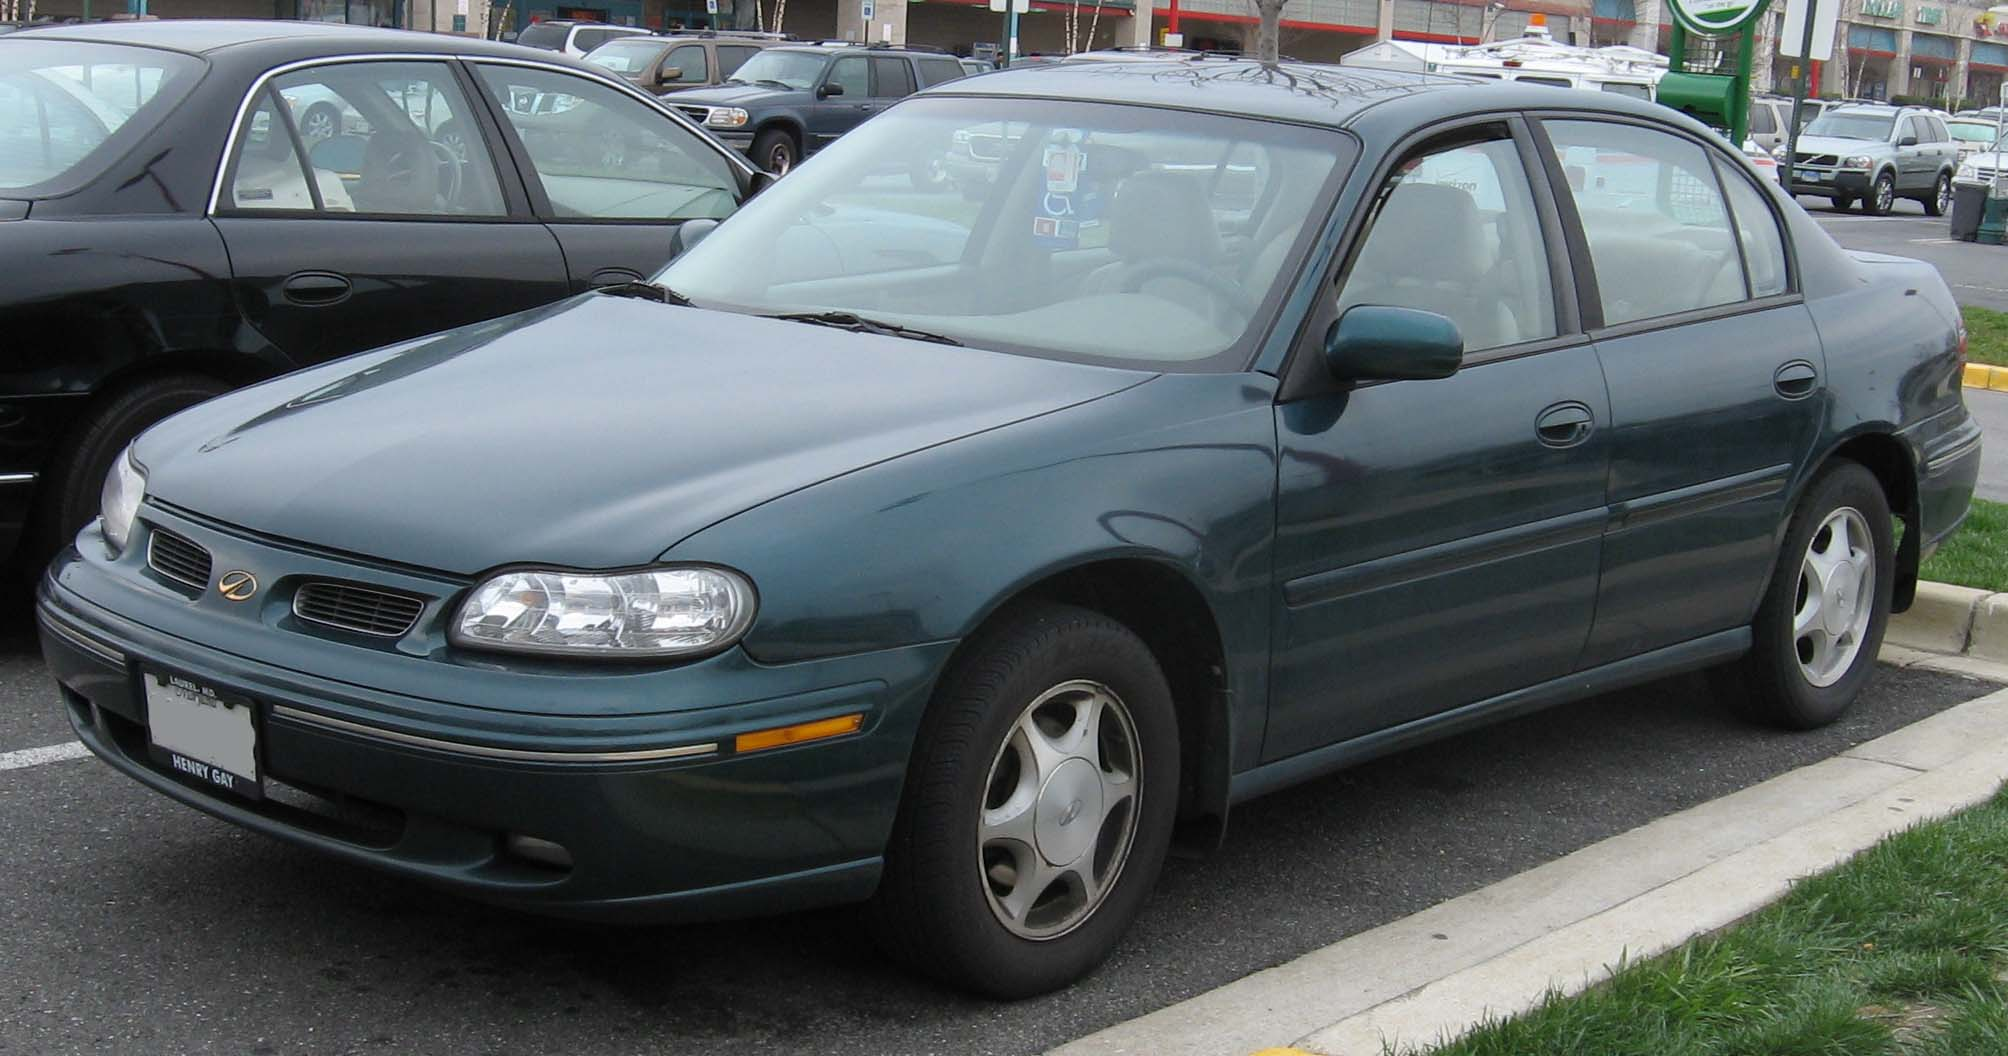 1997 Oldsmobile Cutlass #5